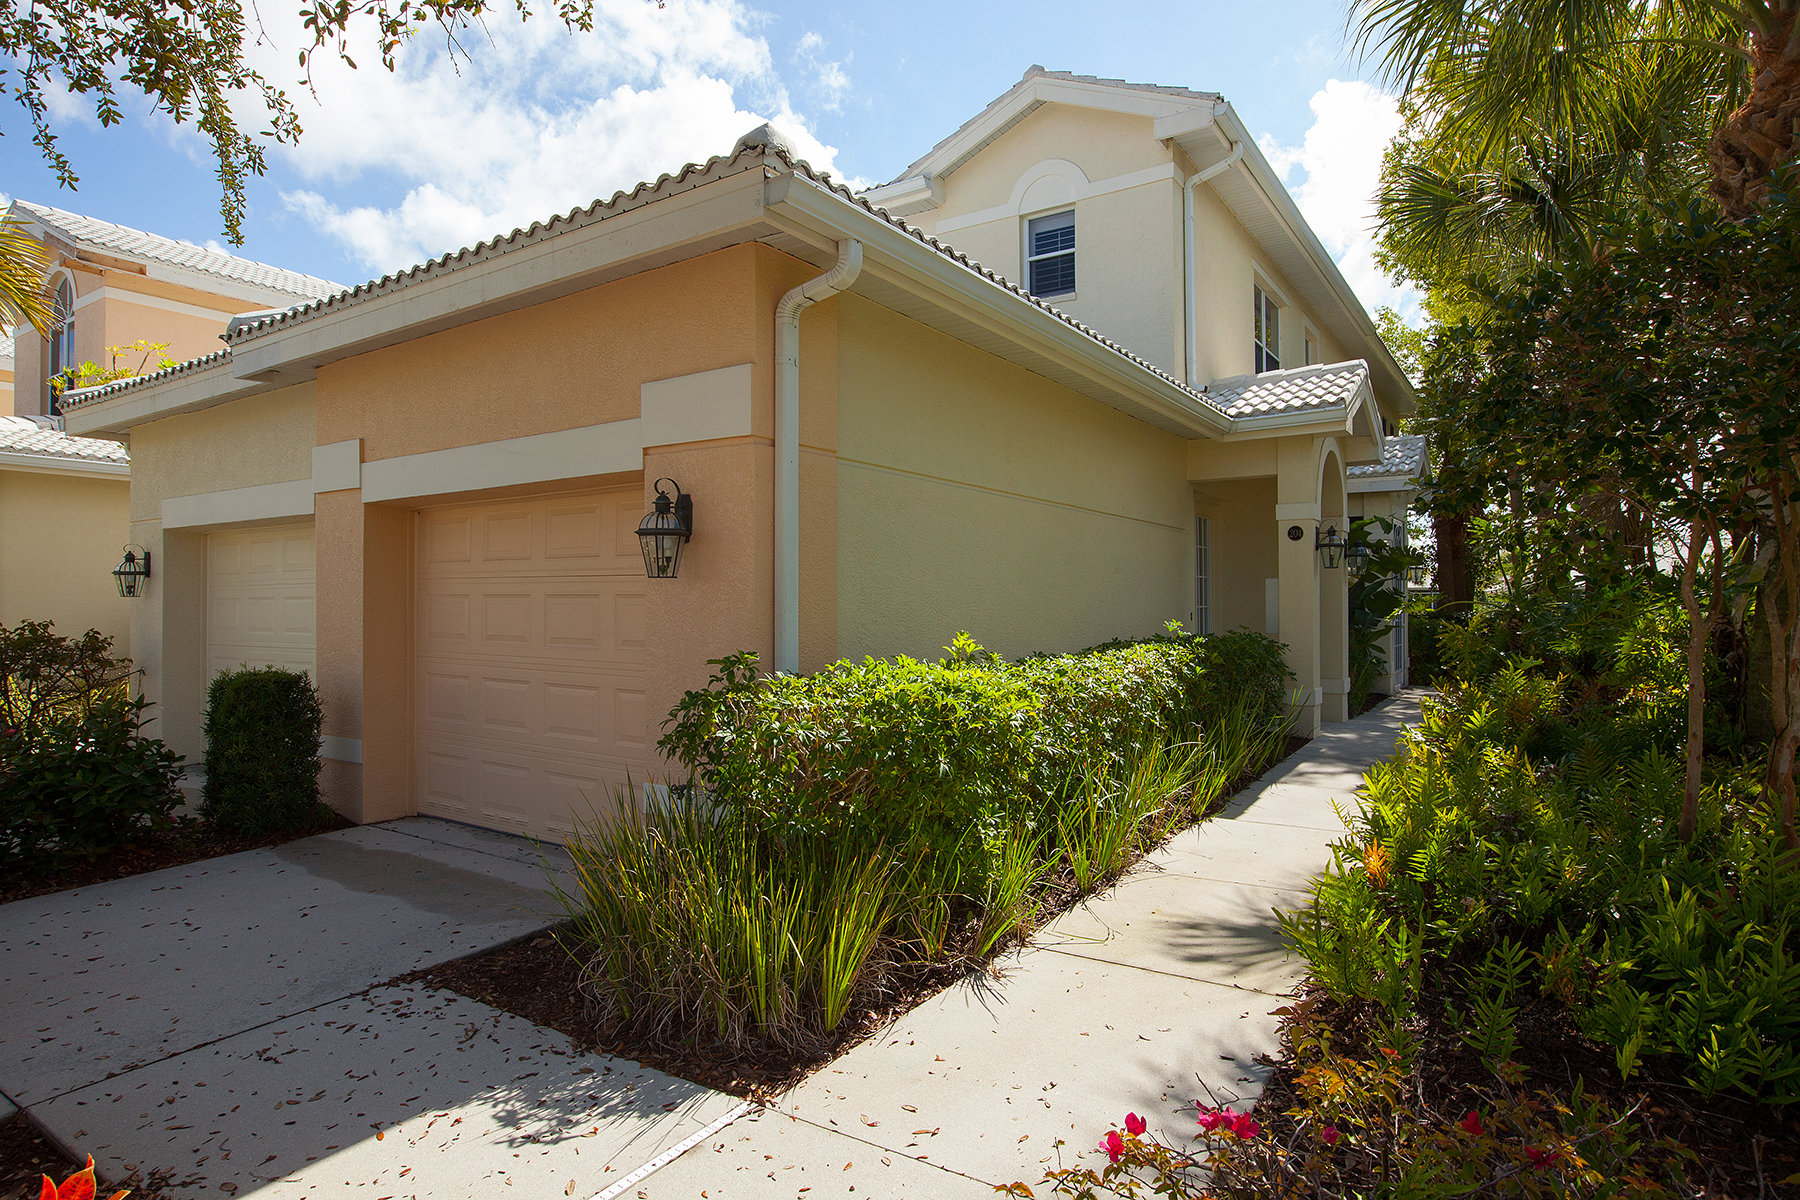 Condominium for Sale at FIDDLER'S CREEK - HAWKS NEST 4630 Hawks Nest Dr 204 Naples, Florida 34114 United States